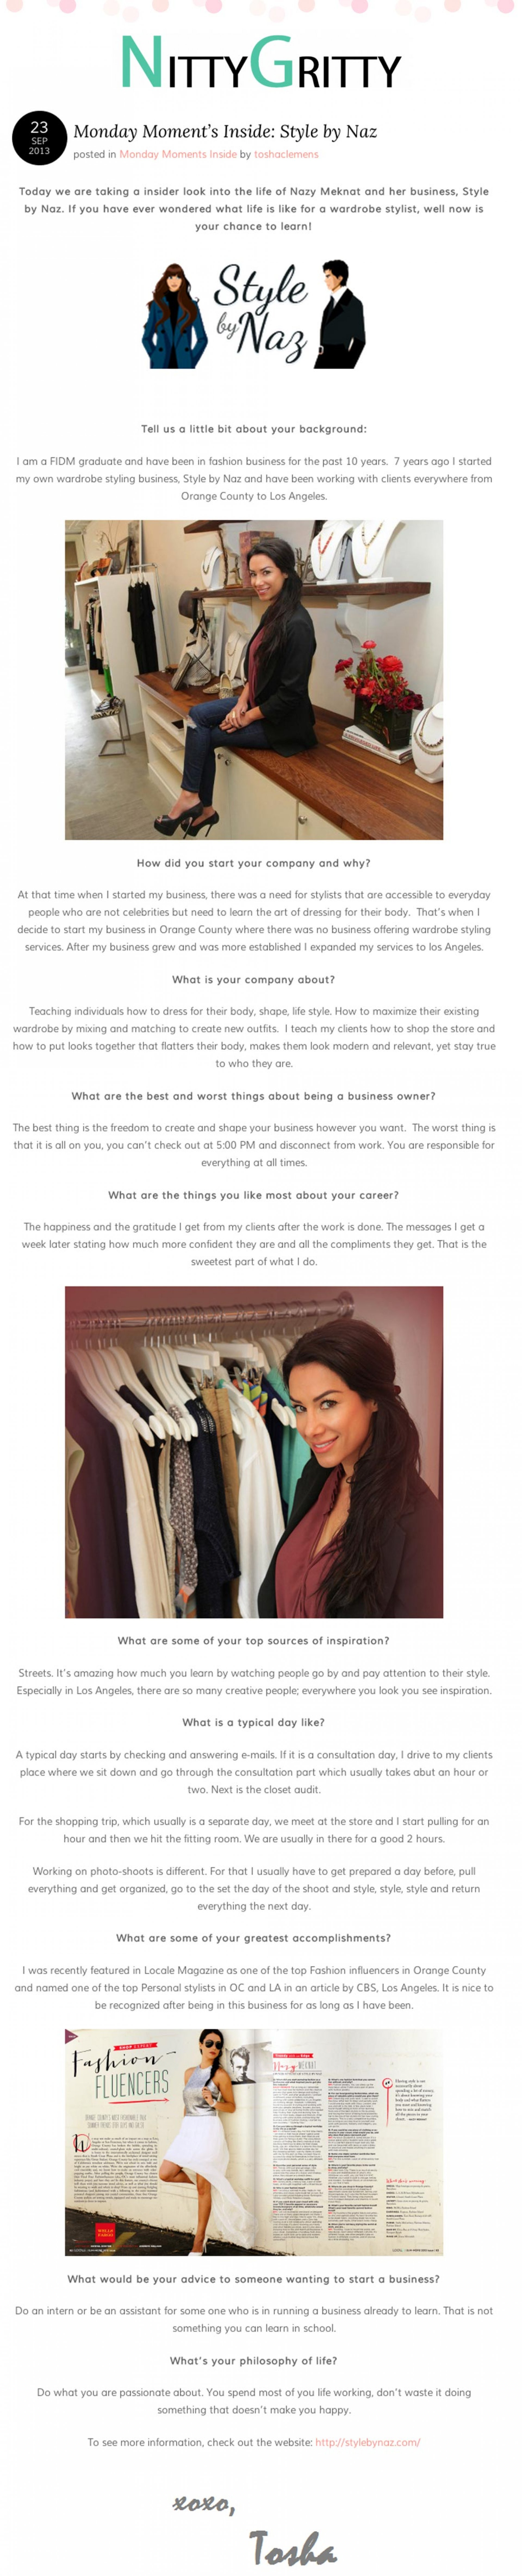 Naz featured on the Nitty Gritty Fashion blog